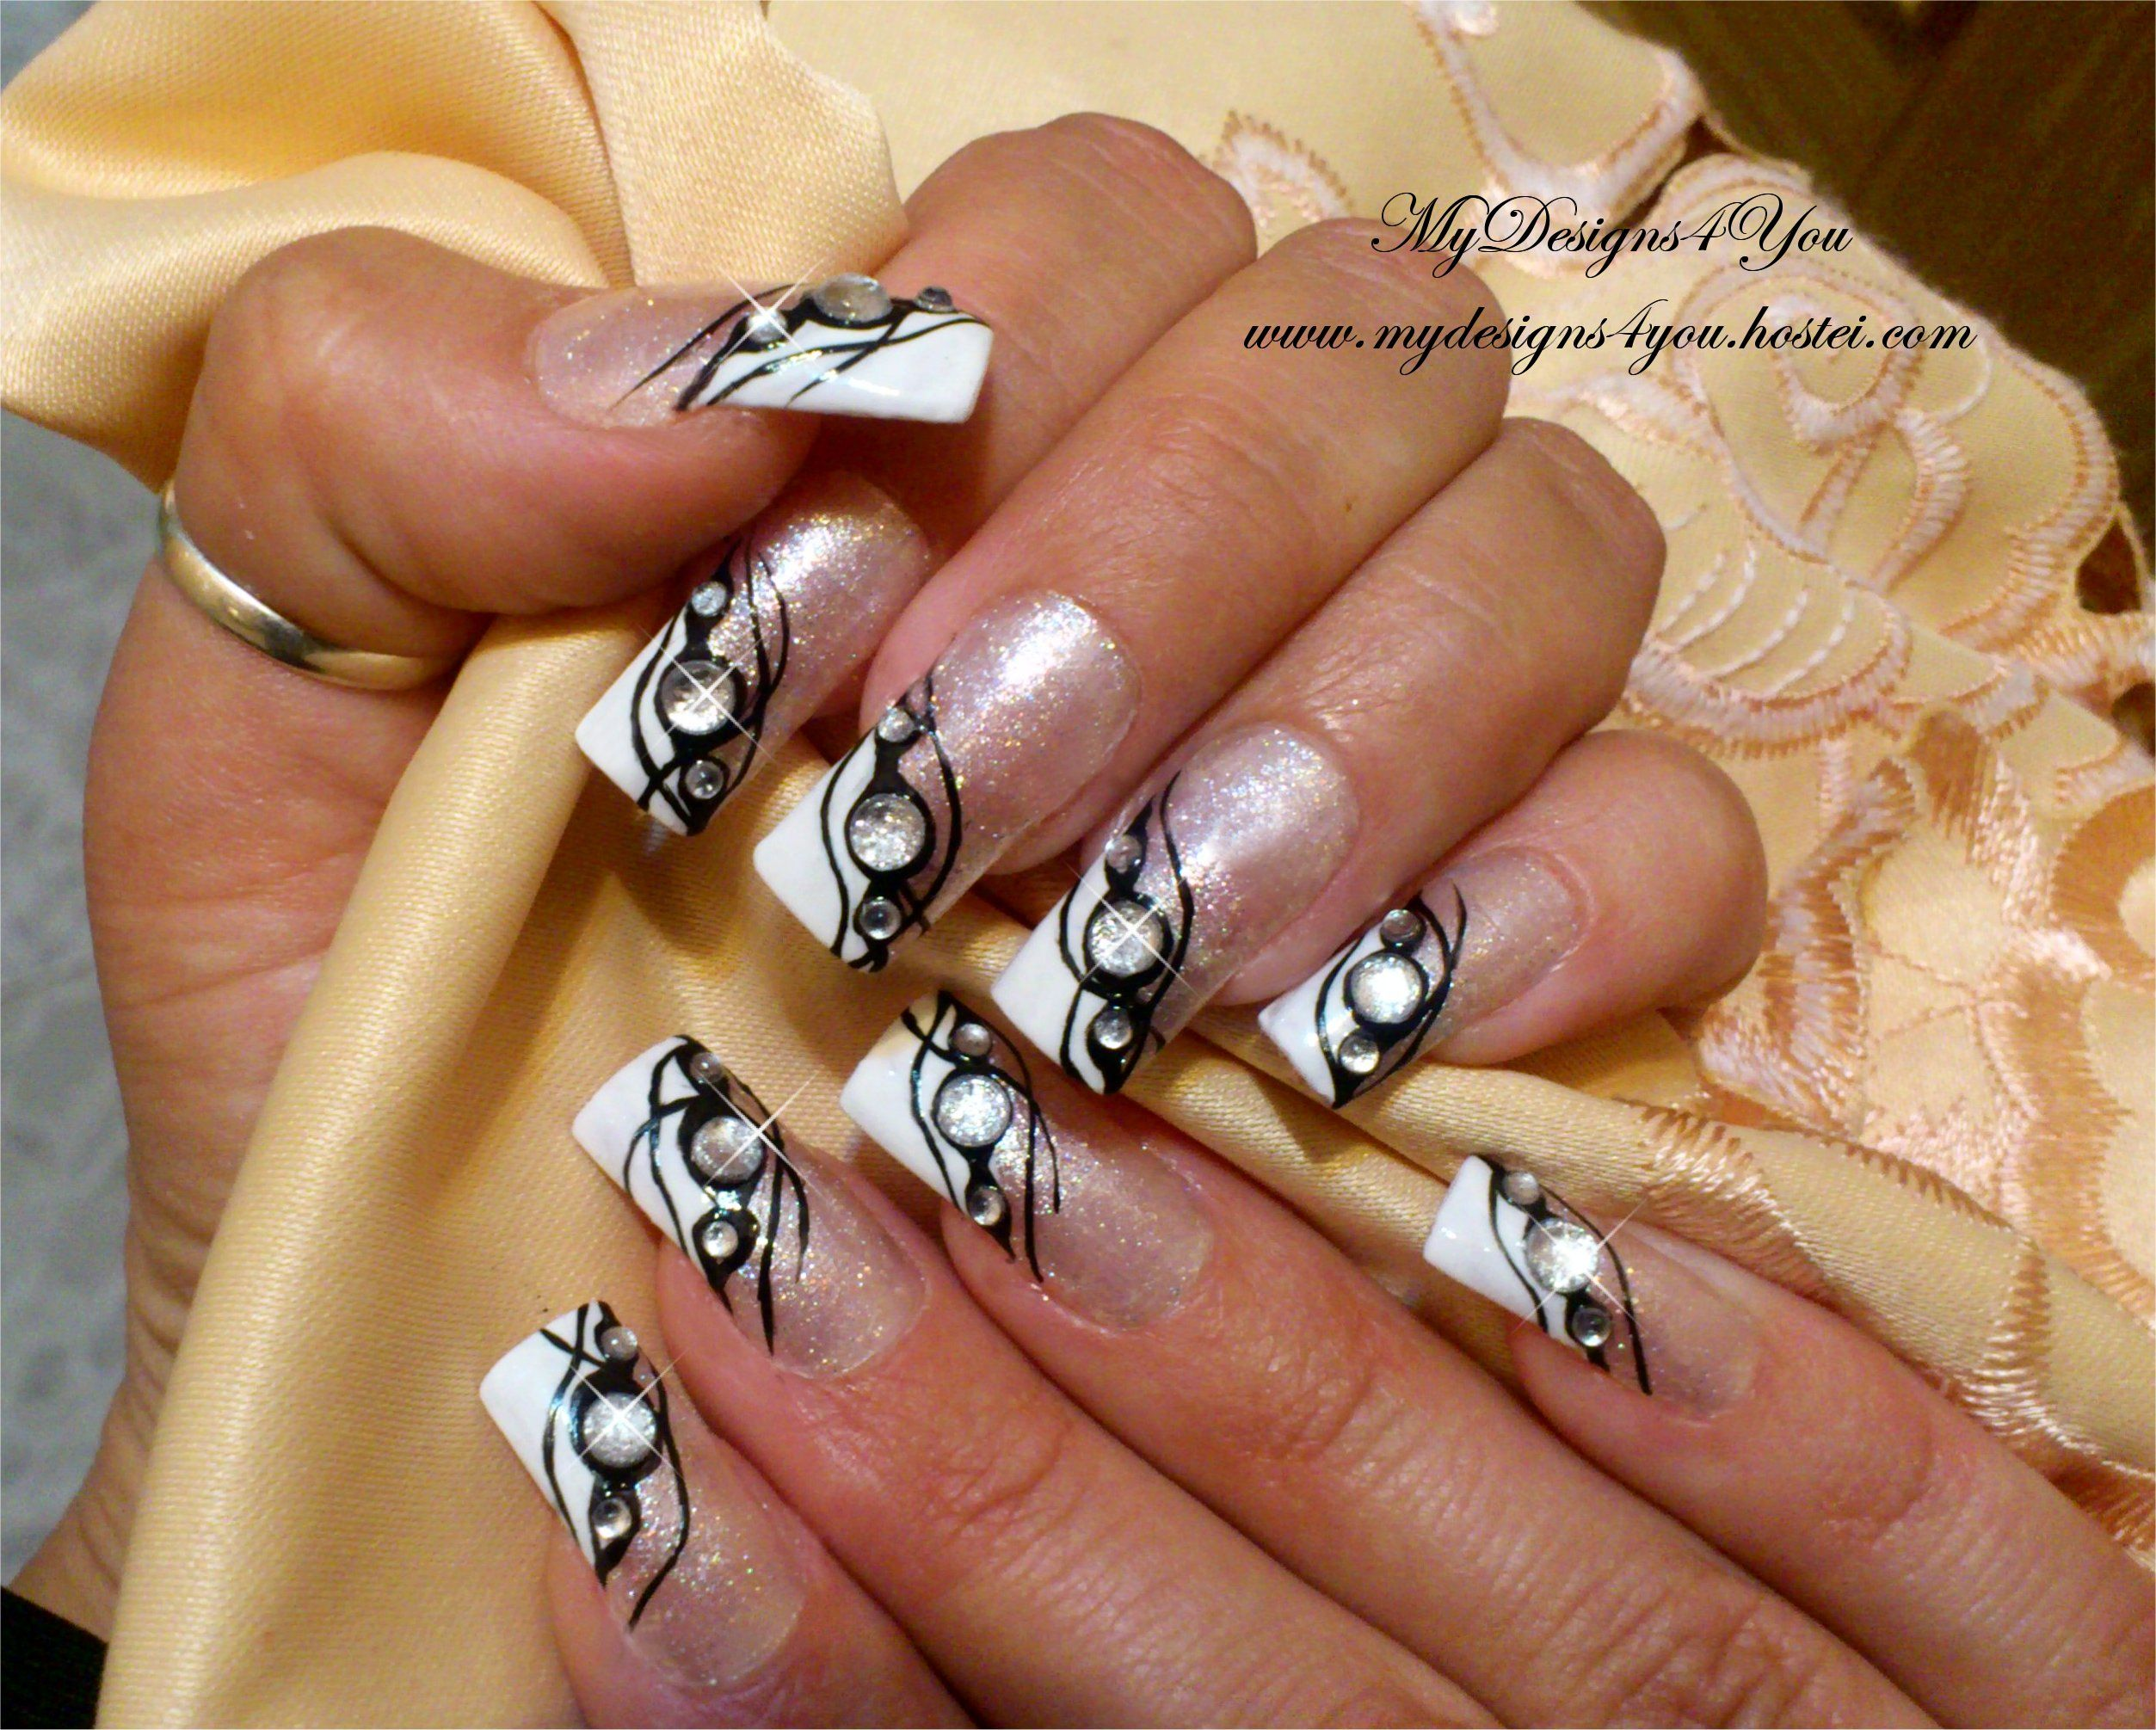 Black Tie Event French, Nails, Tutorial - ♥ MyDesigns4You ...